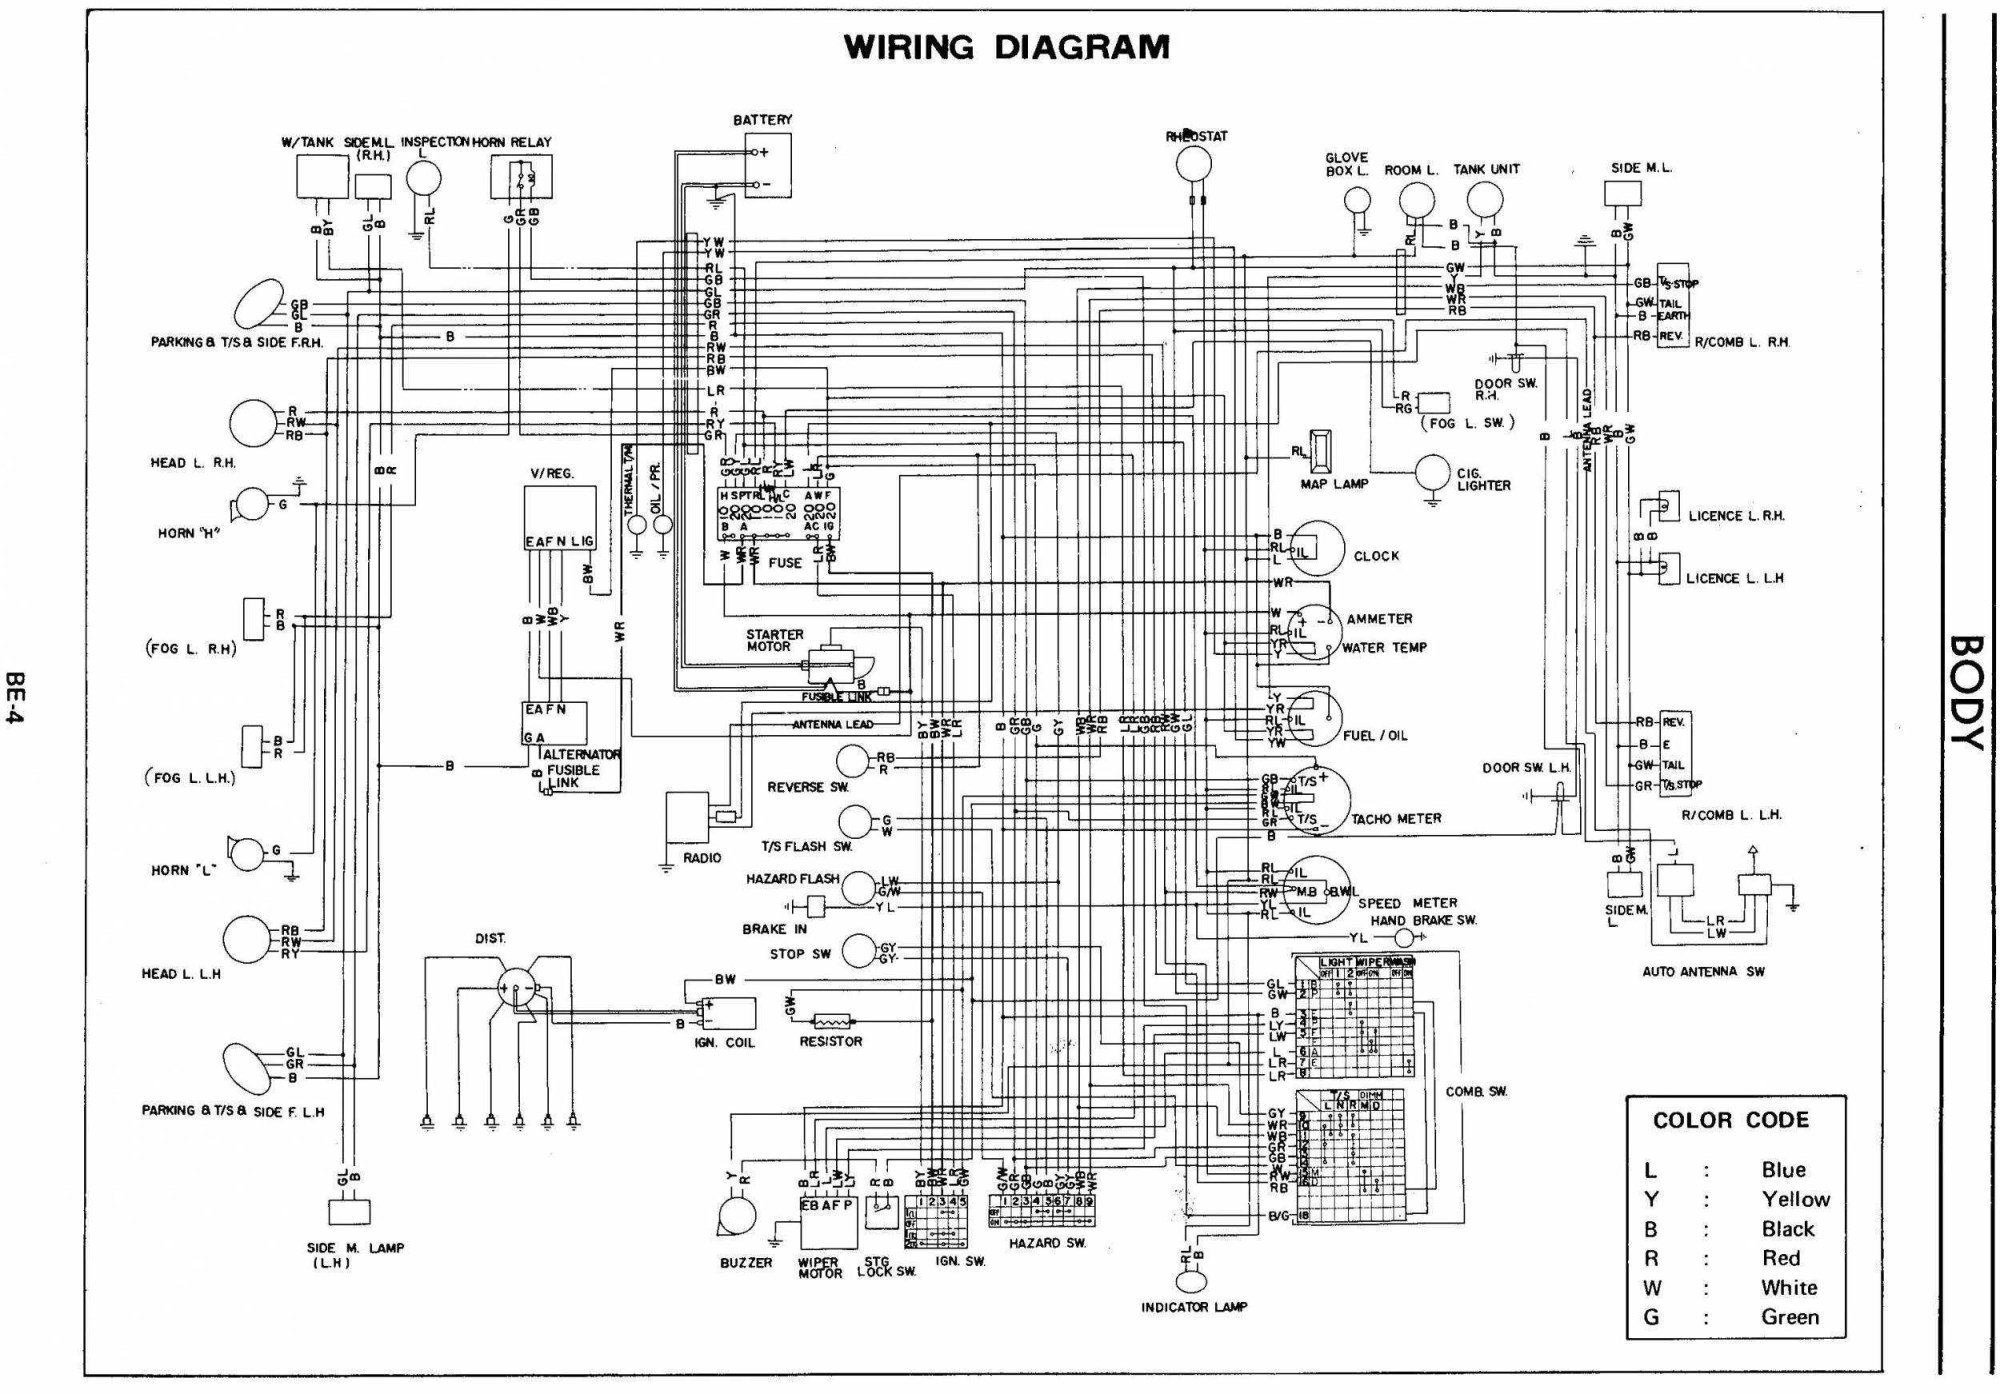 hight resolution of 1972 mercedes 280 fuse diagram wiring diagram advance mercedes a class wiring diagram mercedes a wiring diagram